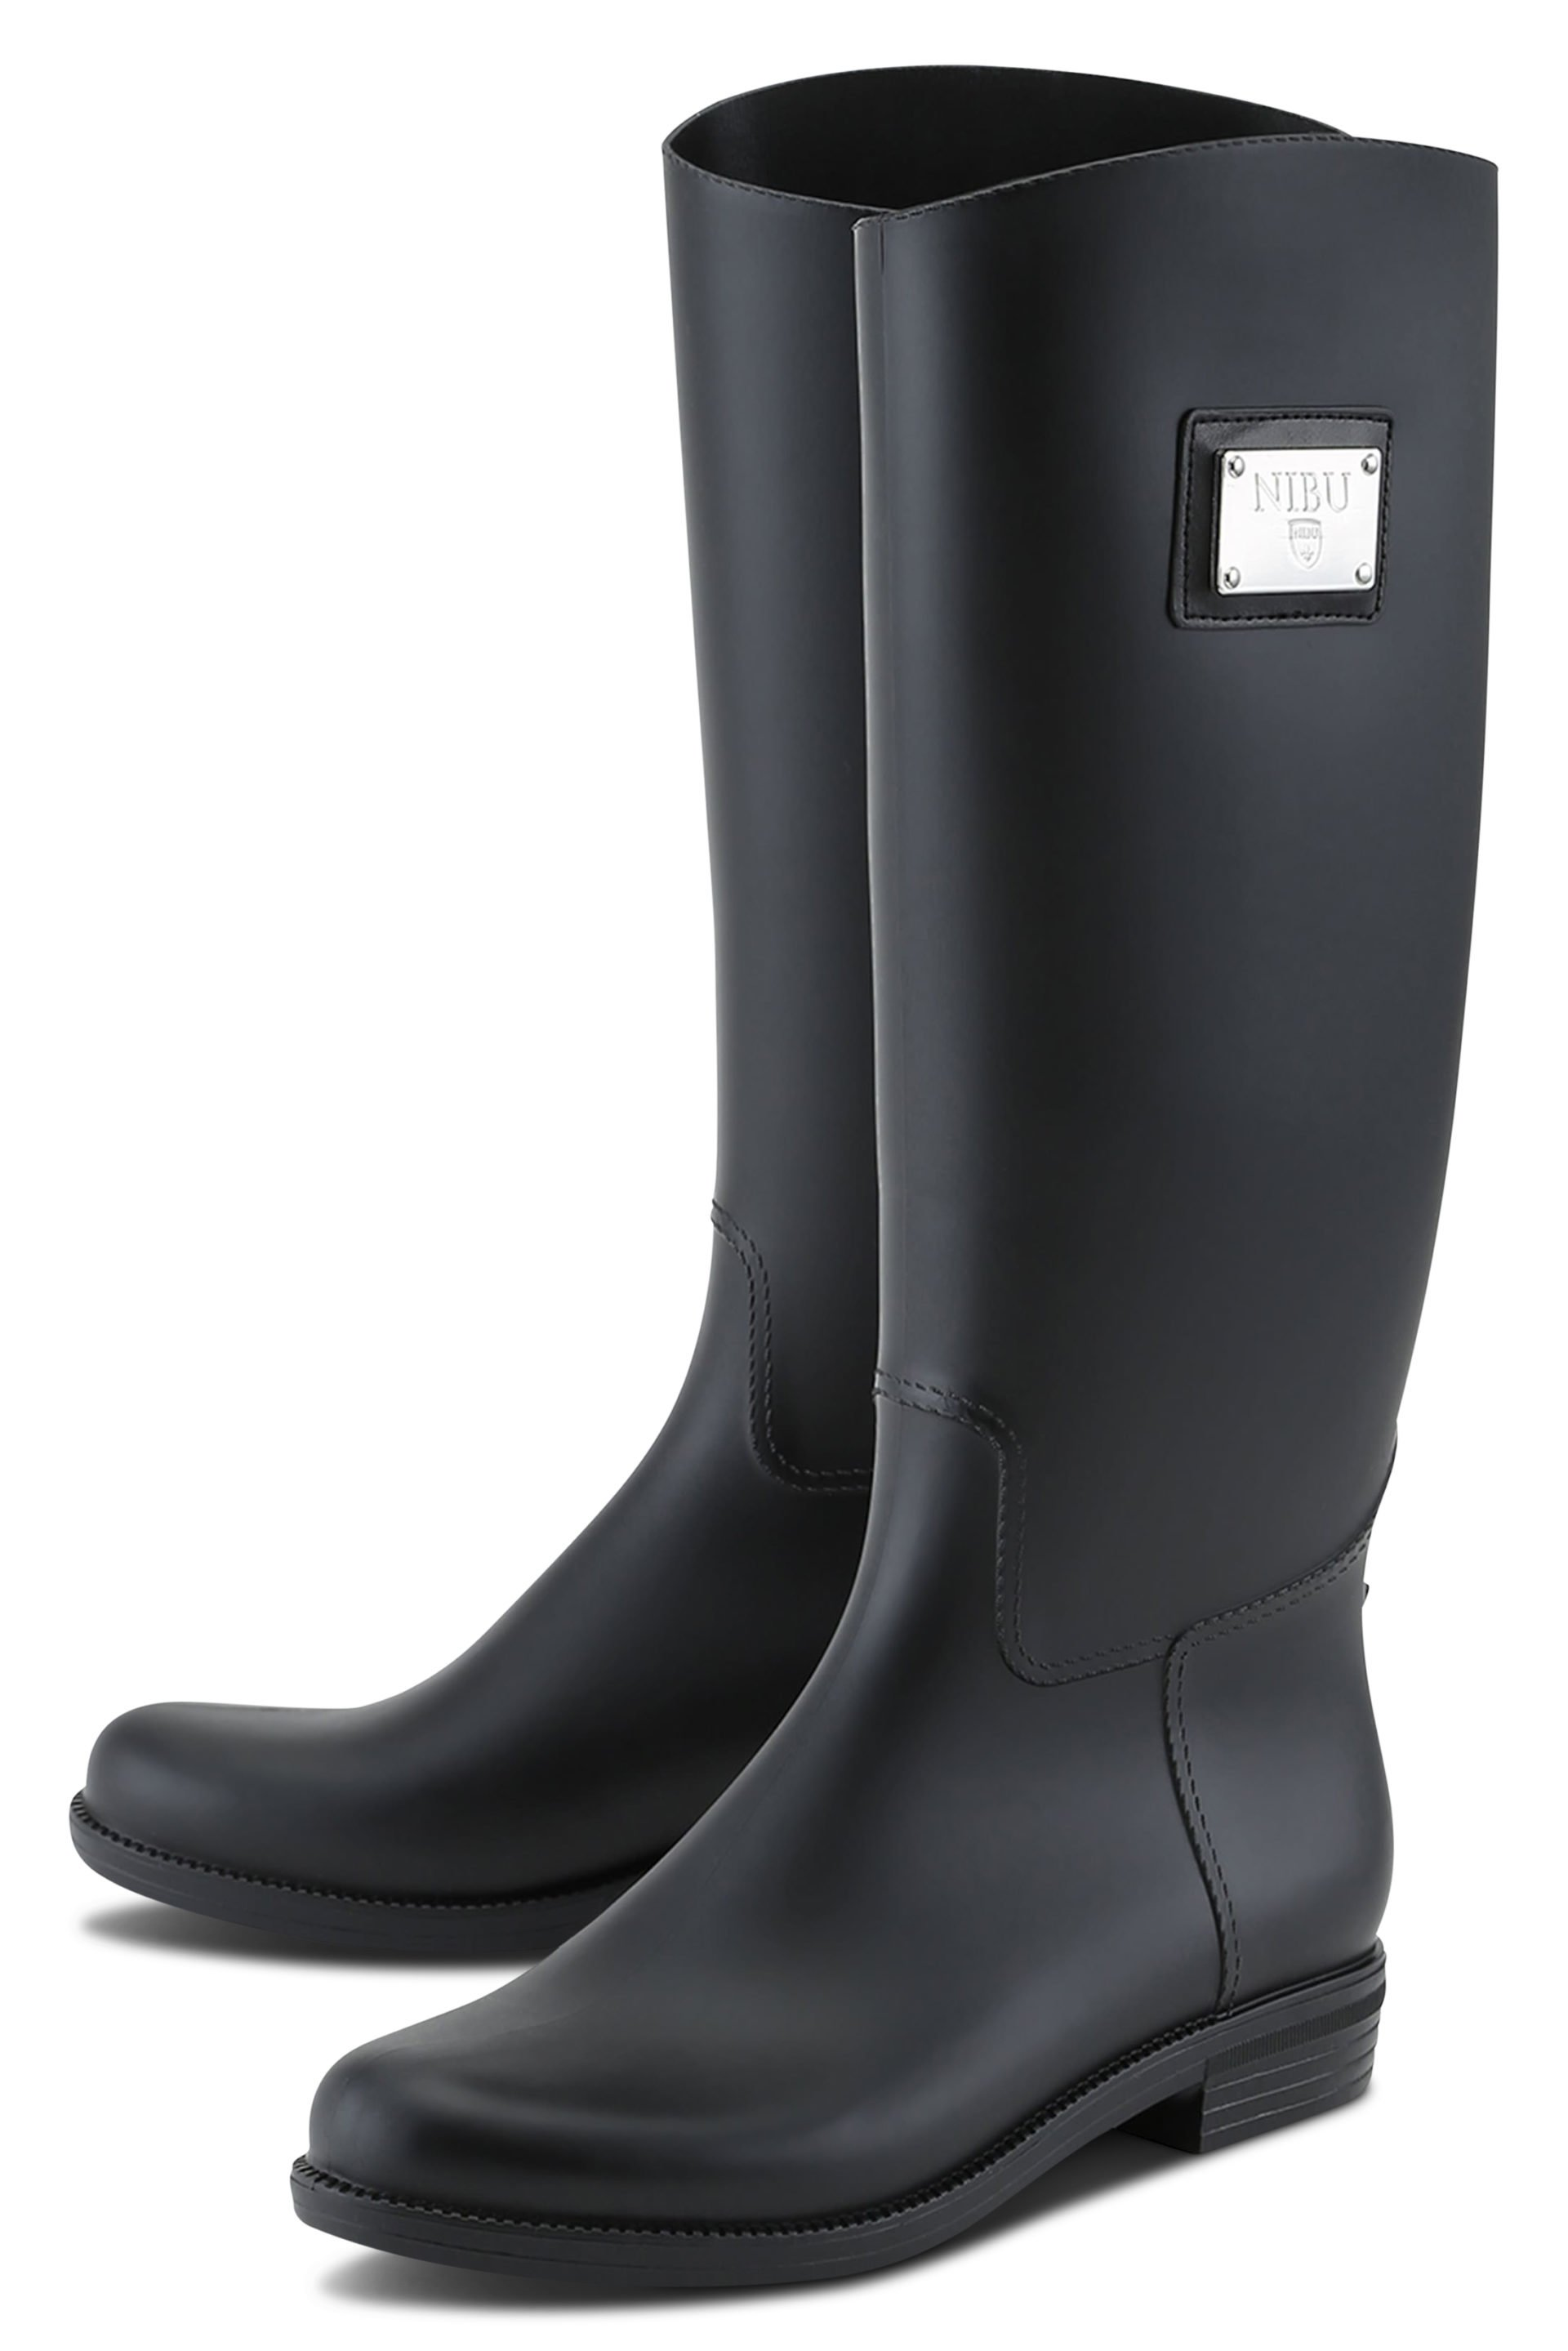 Black rainboots with silver logo plate